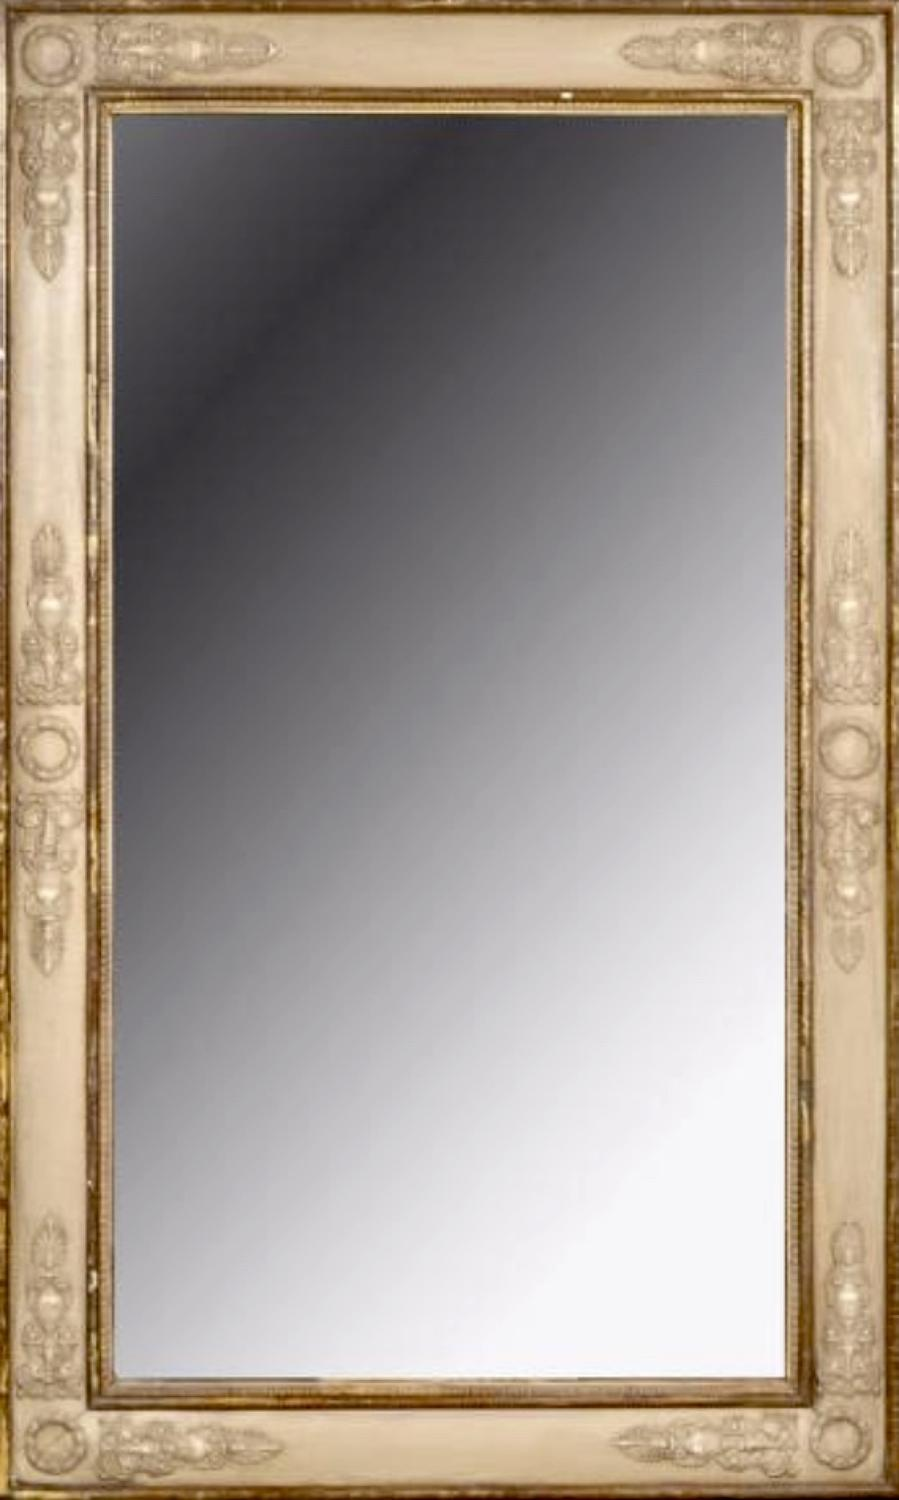 A FRENCH EMPIRE MIRROR